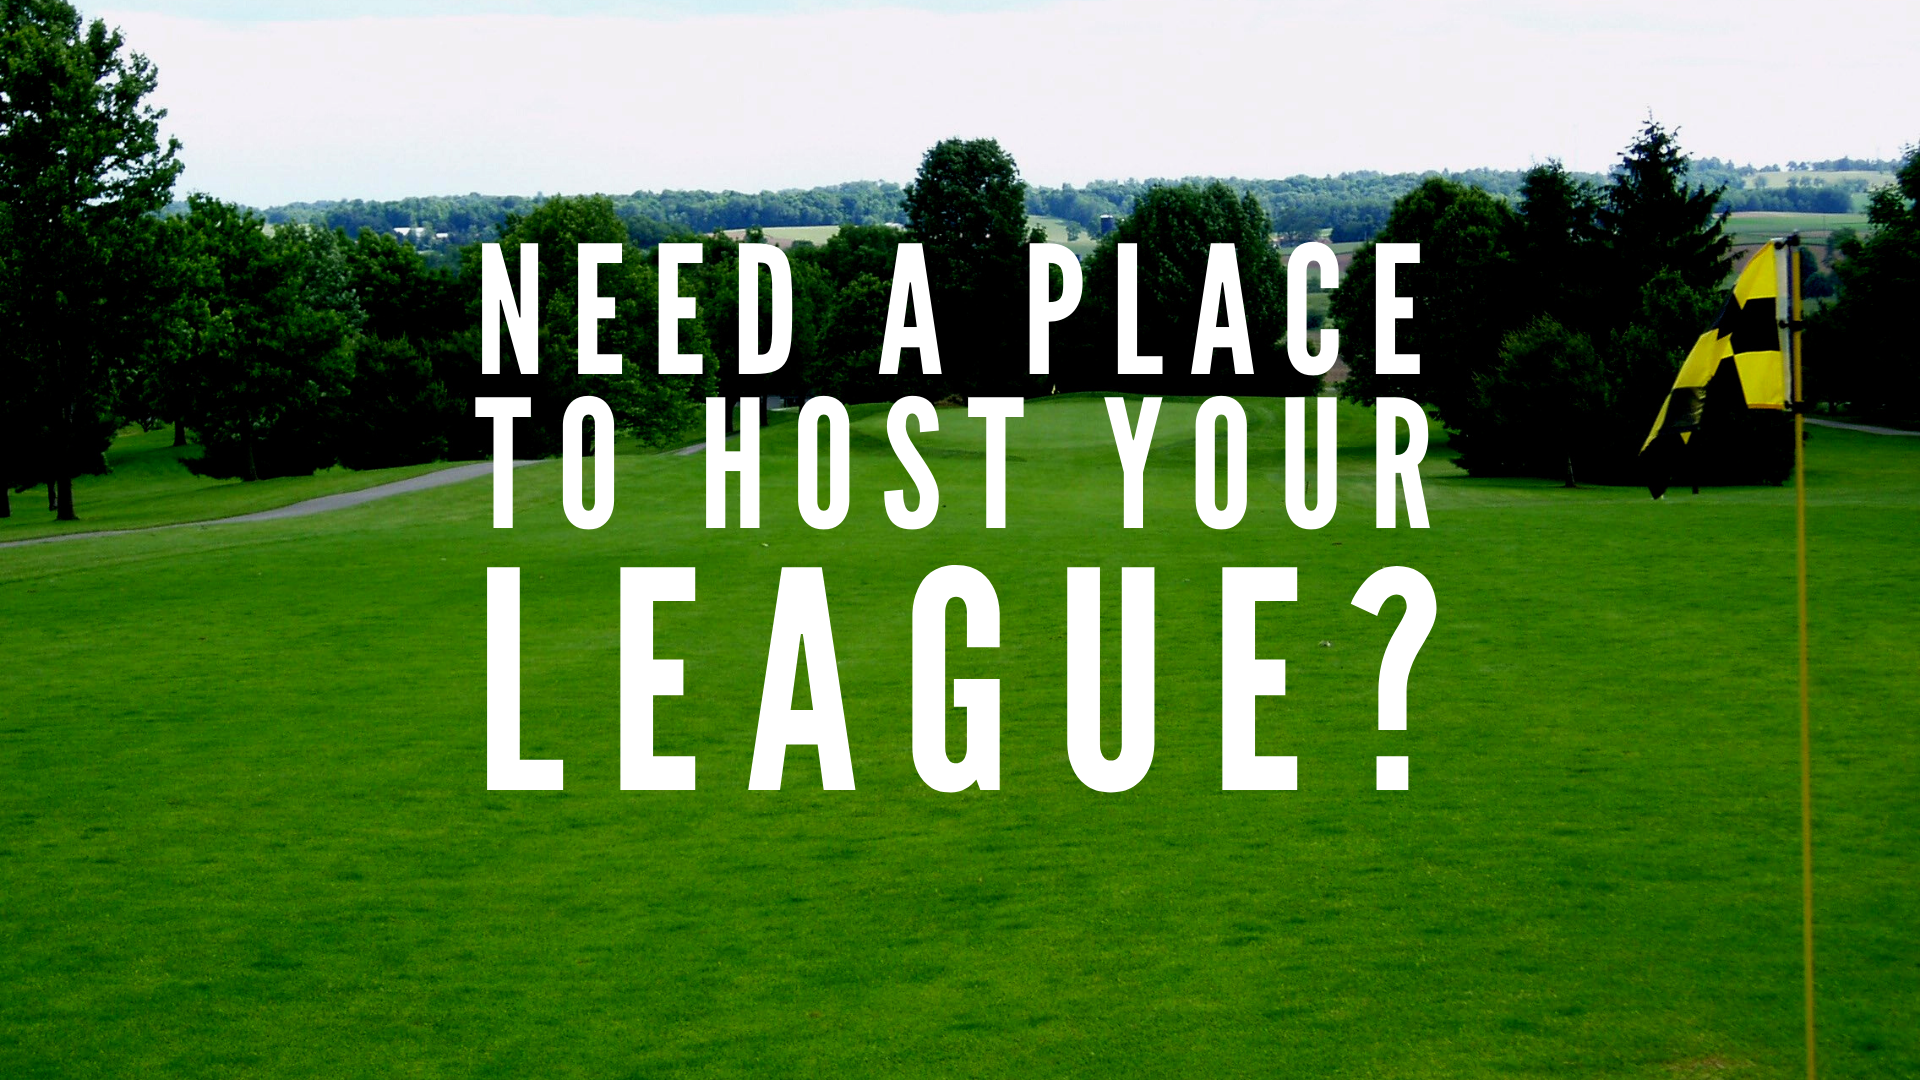 Need a place to host your league?